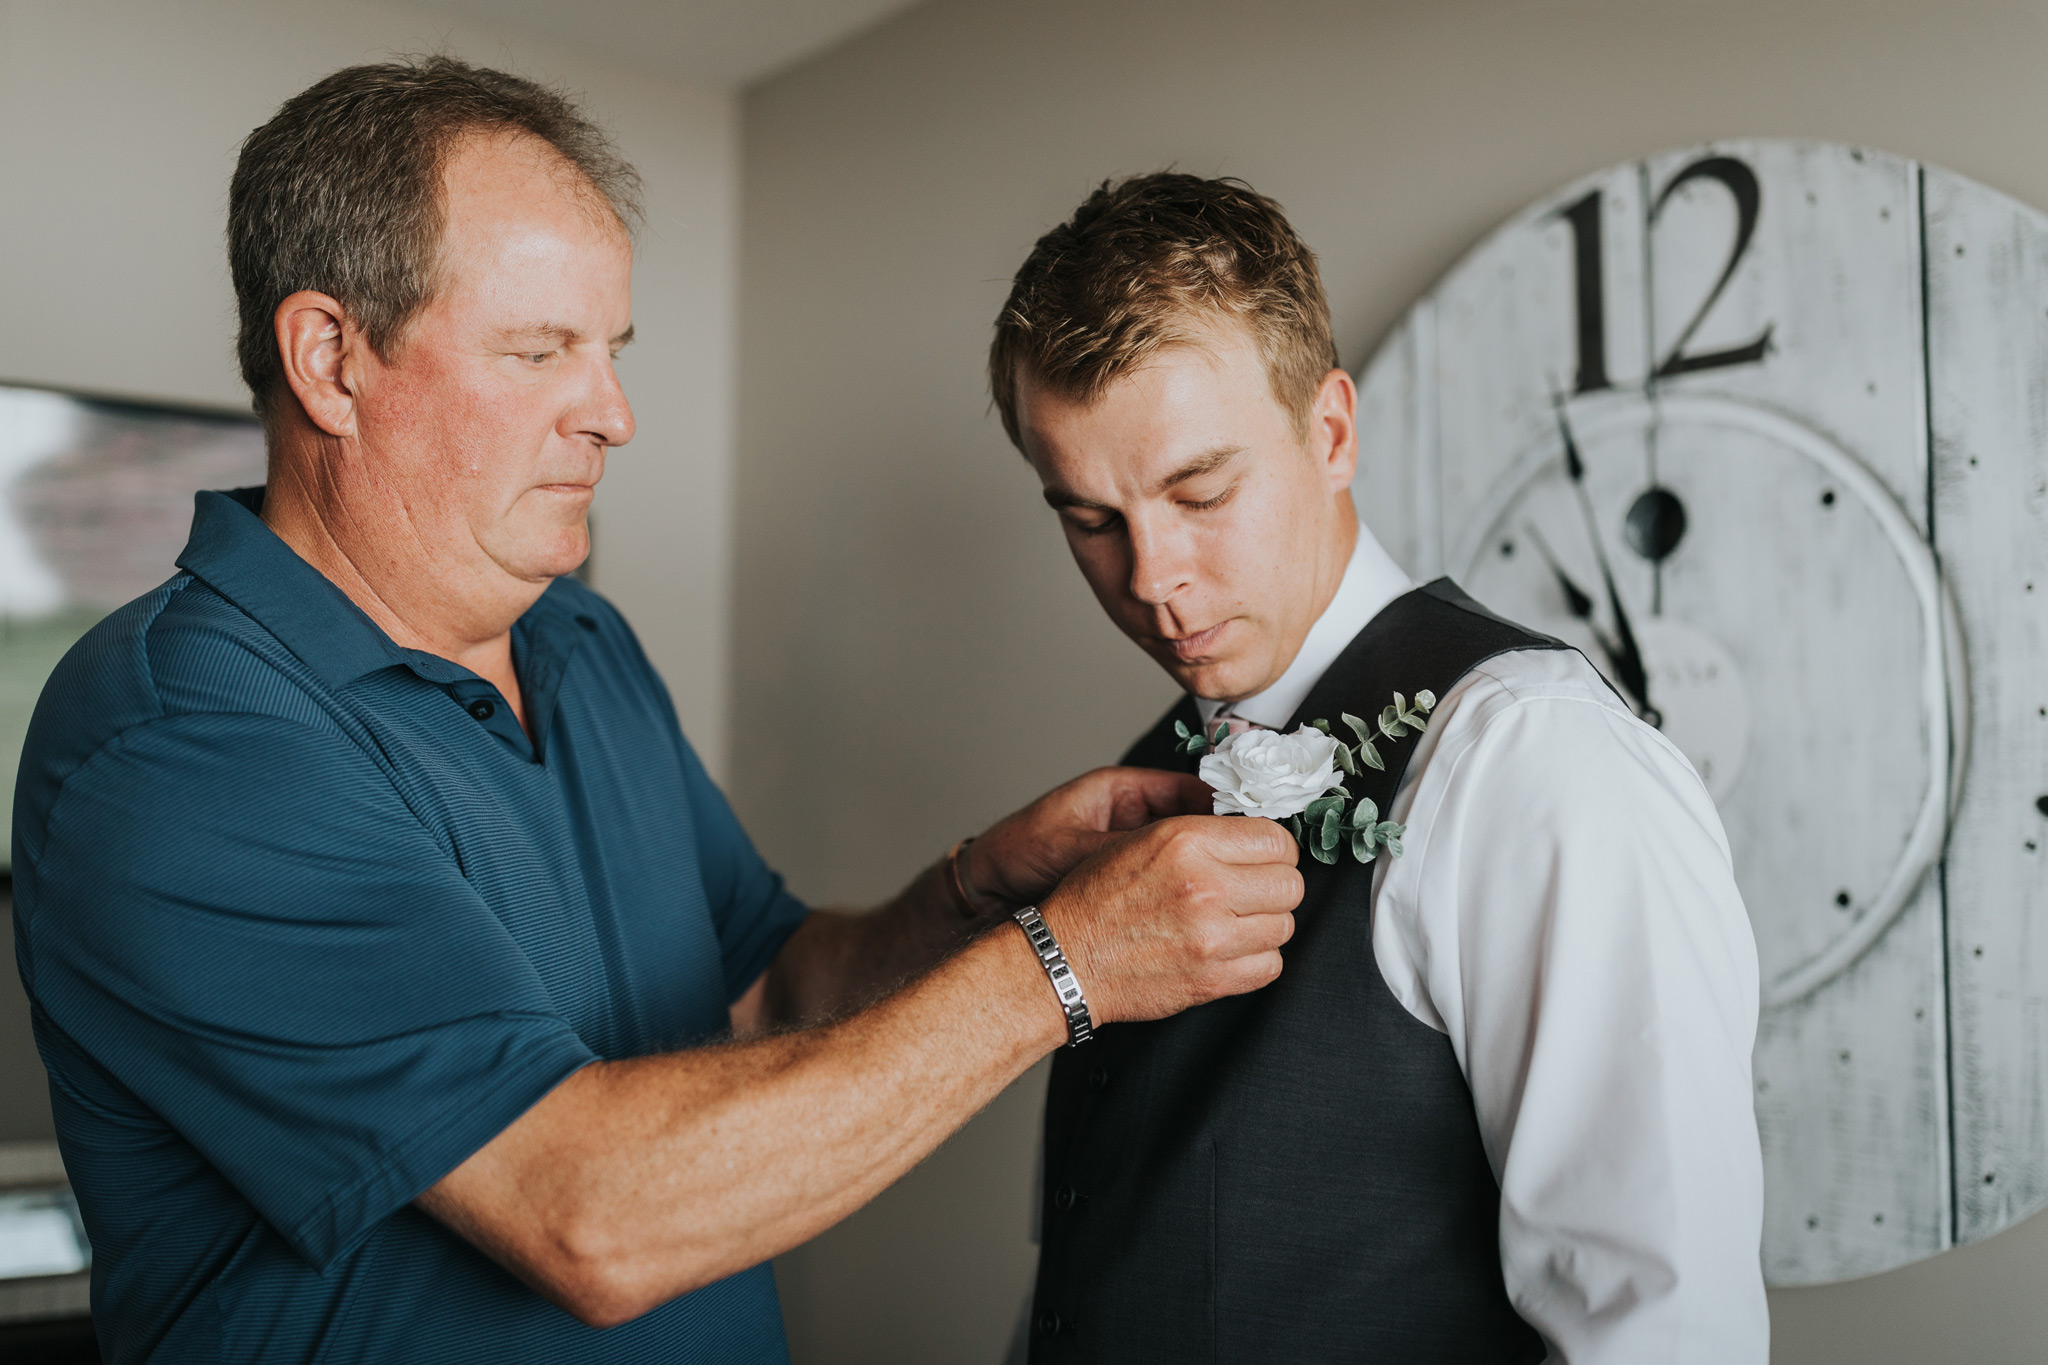 grooms dad pinning boutonniere on groom